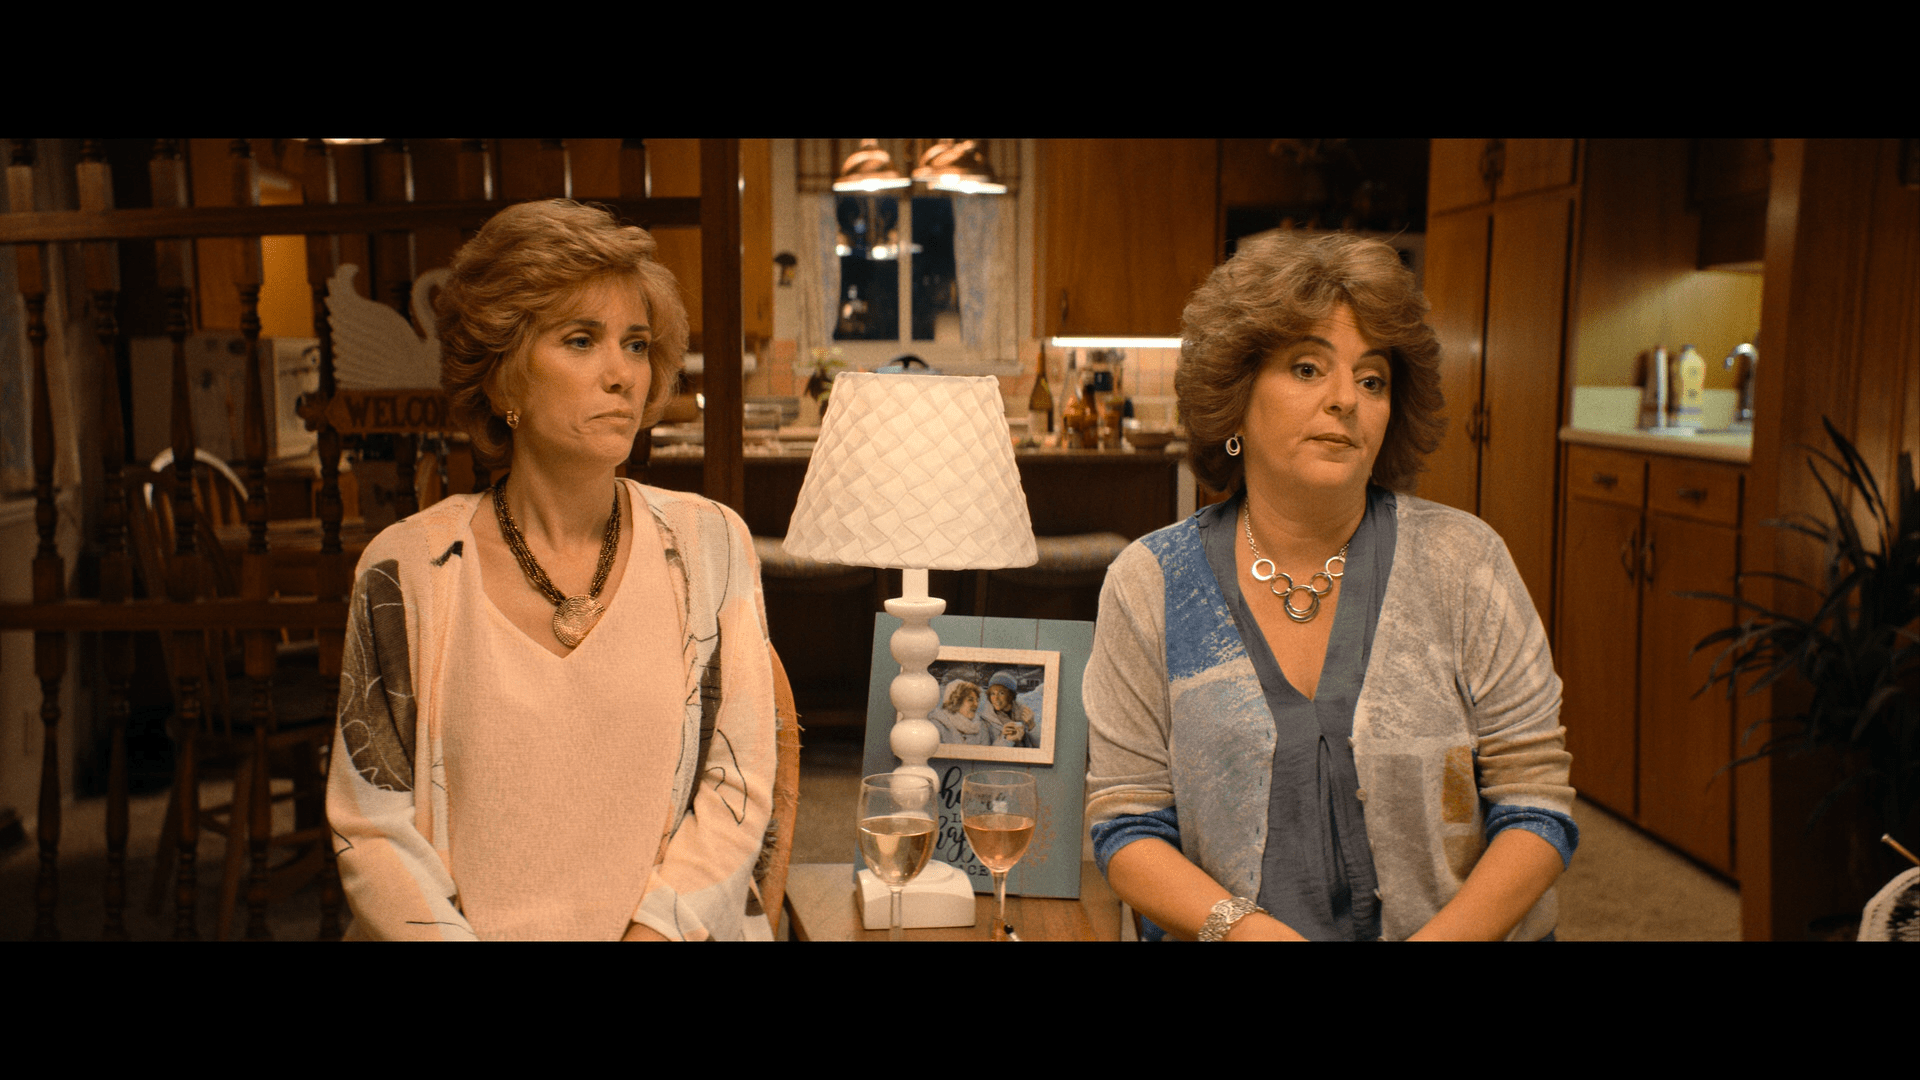 Barb and Star Go to Vista Del Mar (2021) [Blu-ray review] 8